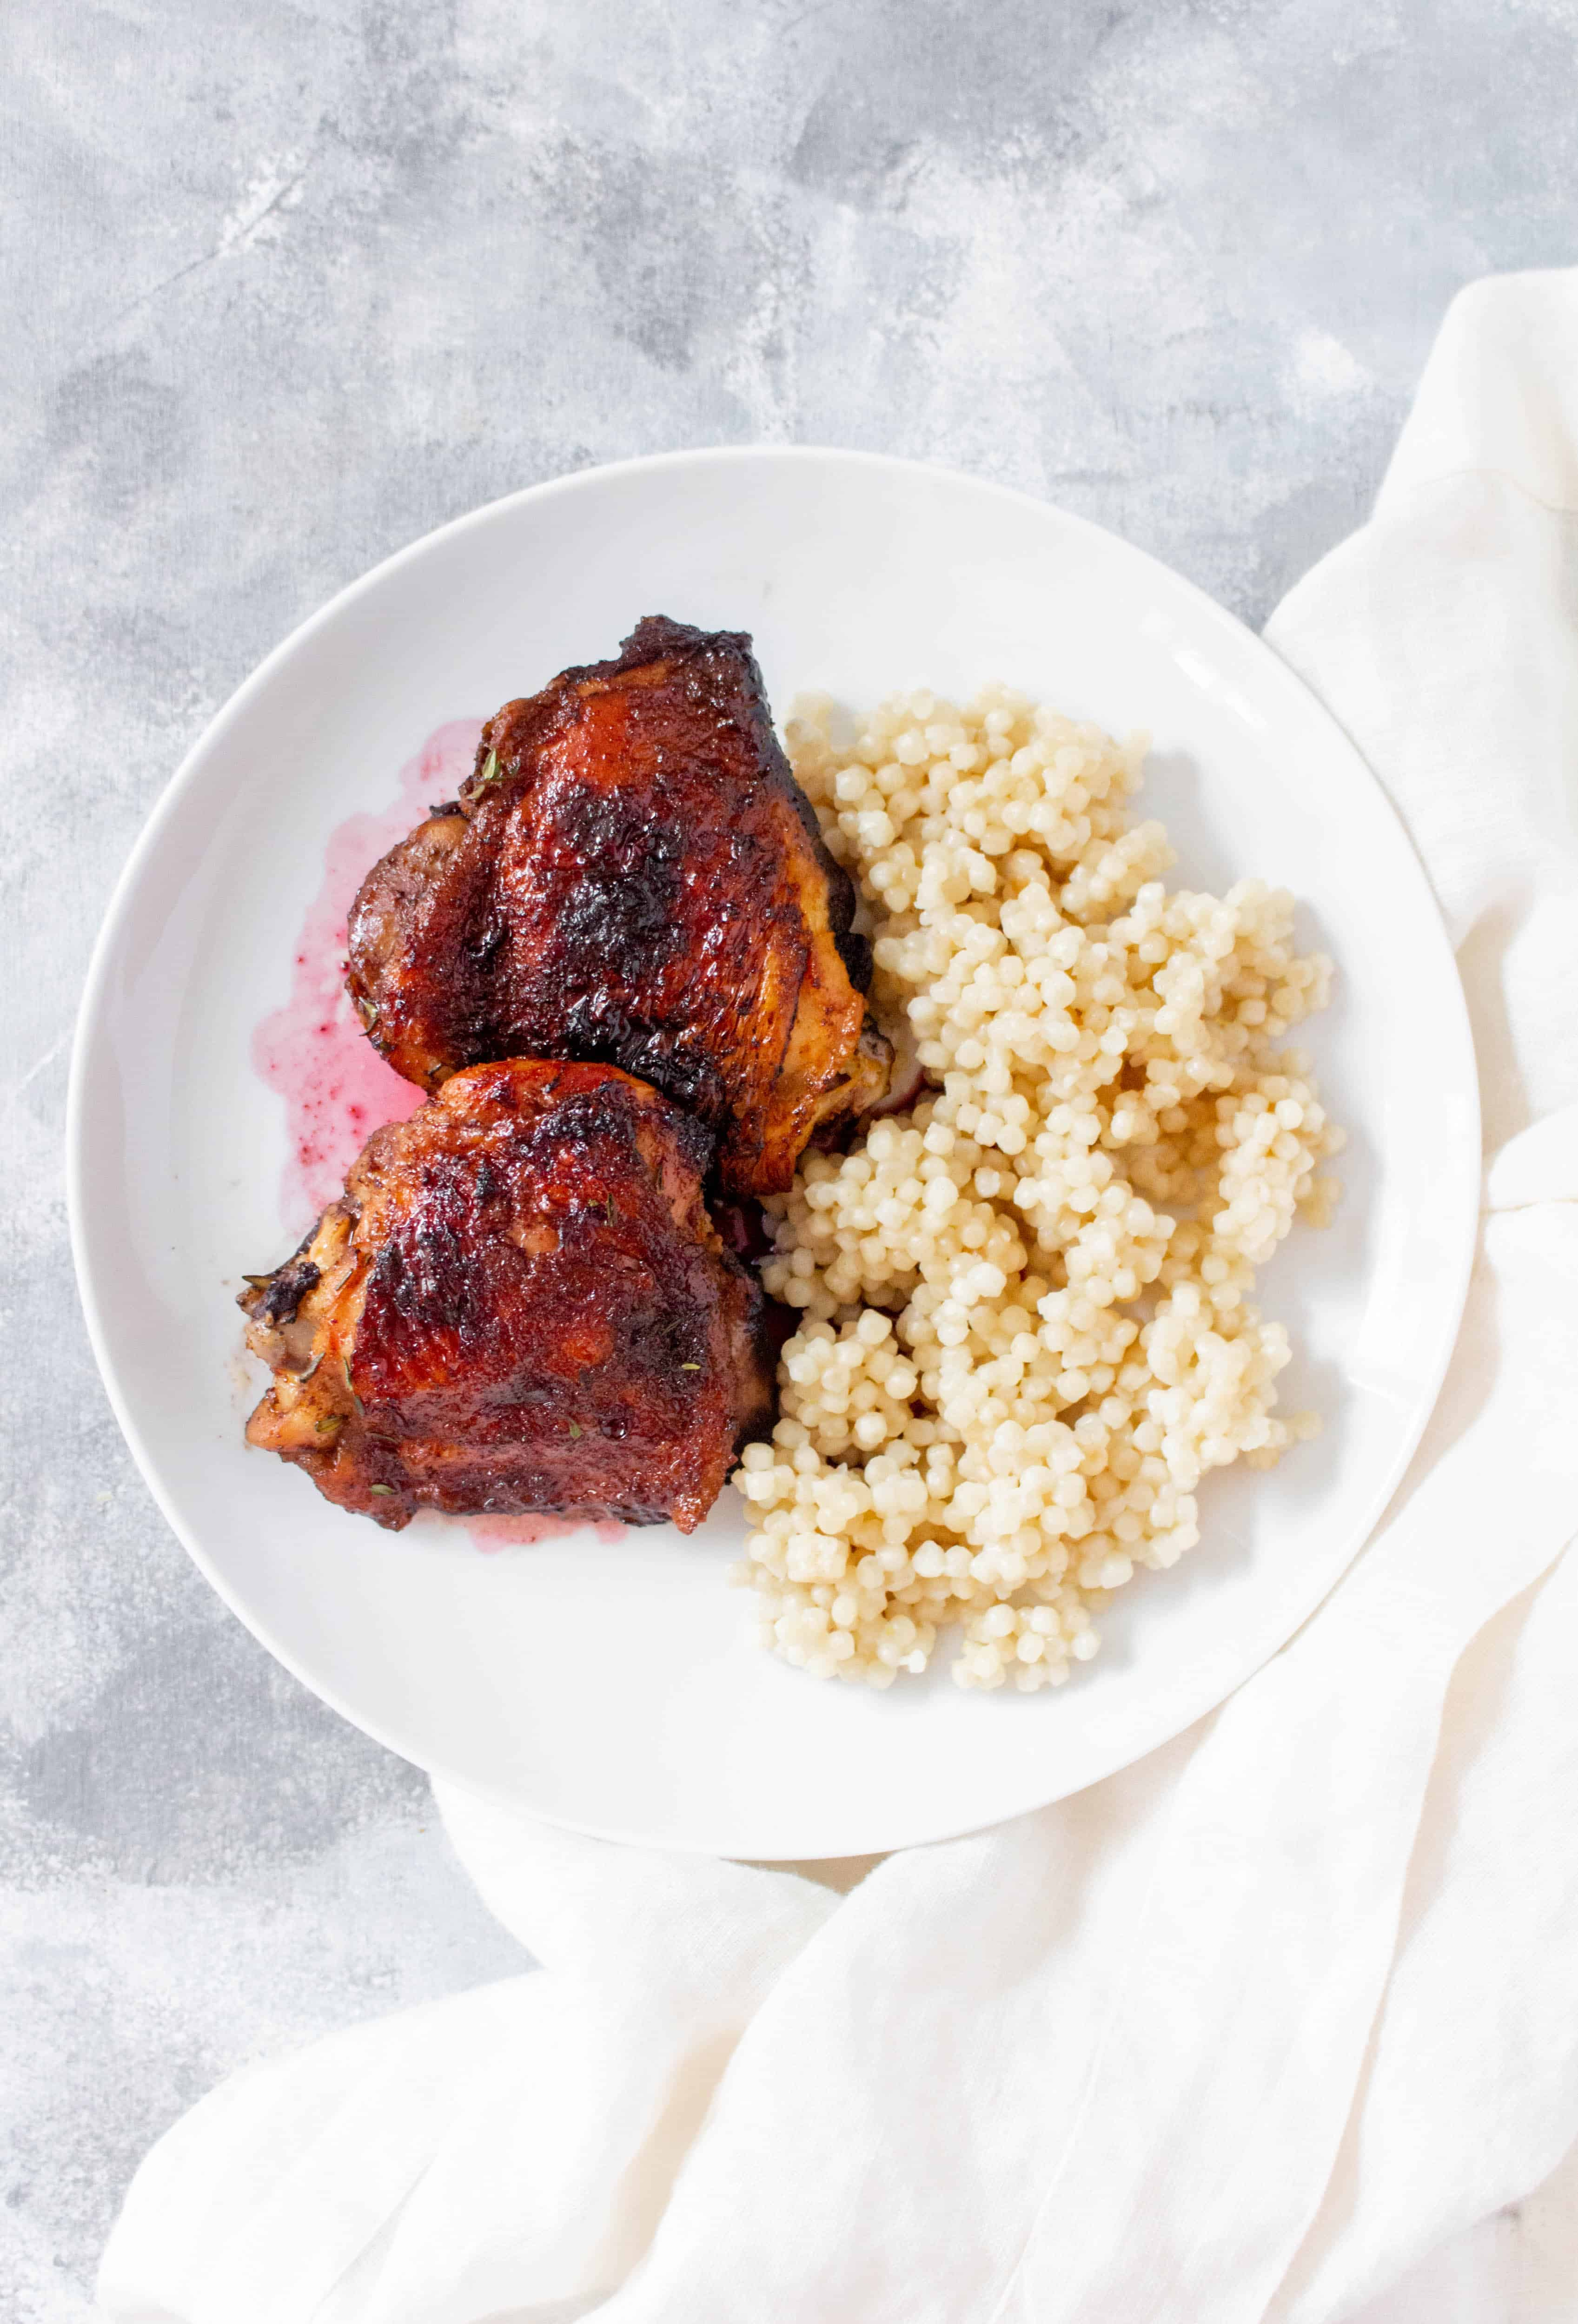 Juicy, sweet, and bursting with flavour, this Pomegranate Glazed Chicken Thighs makes for a perfect dinner or as a meal prep.